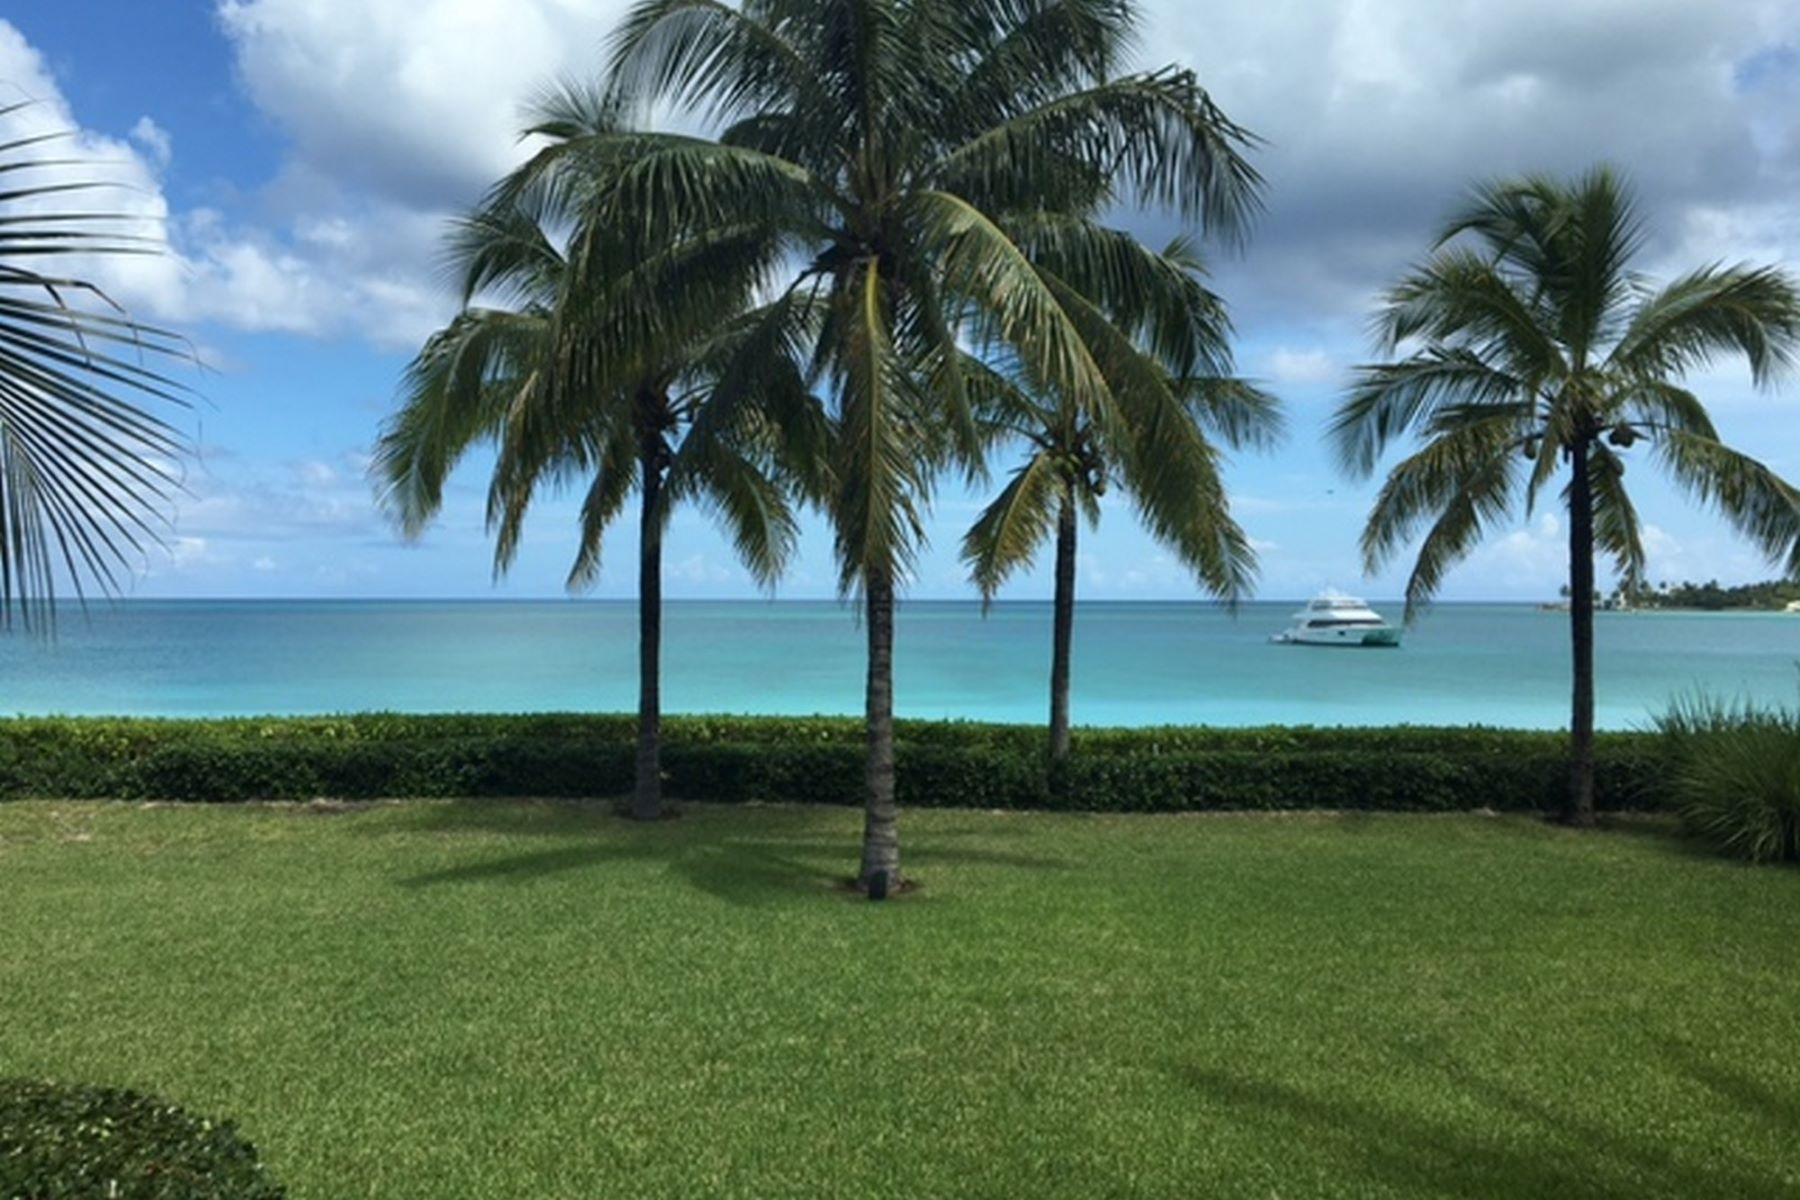 Additional photo for property listing at Lagoon Beach House Autres Bahamas, Autres Régions Des Bahamas Bahamas